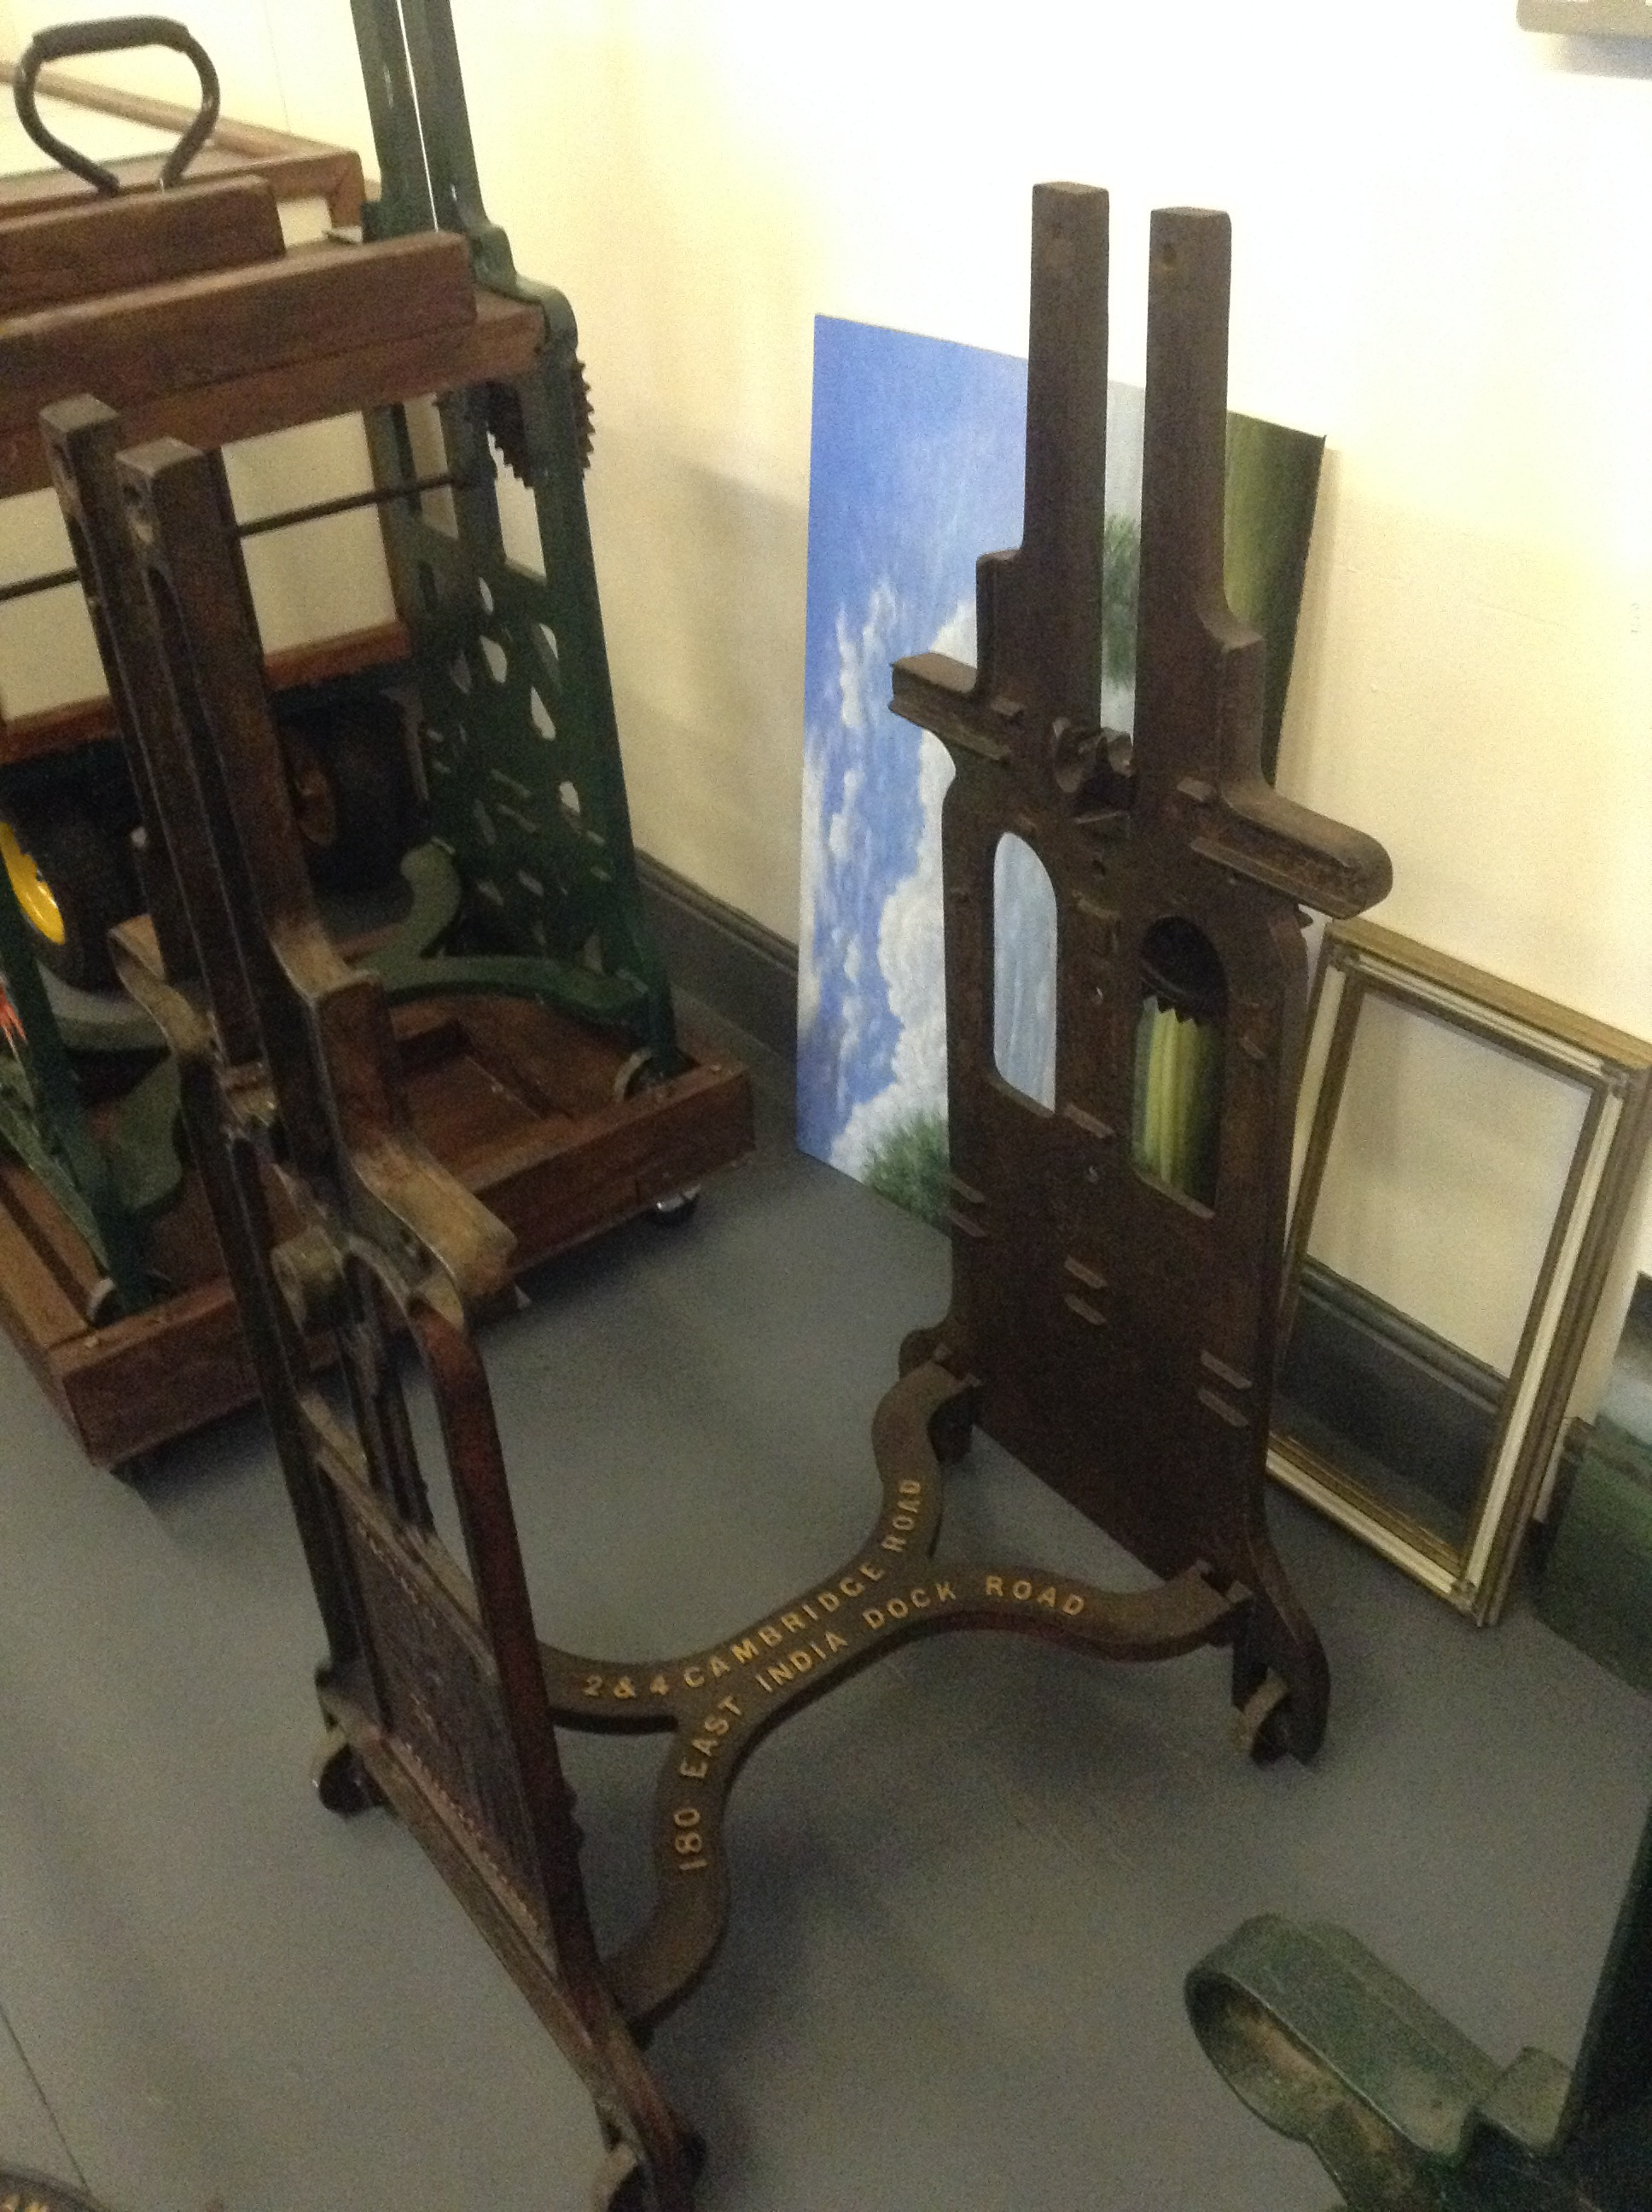 Large mangle press